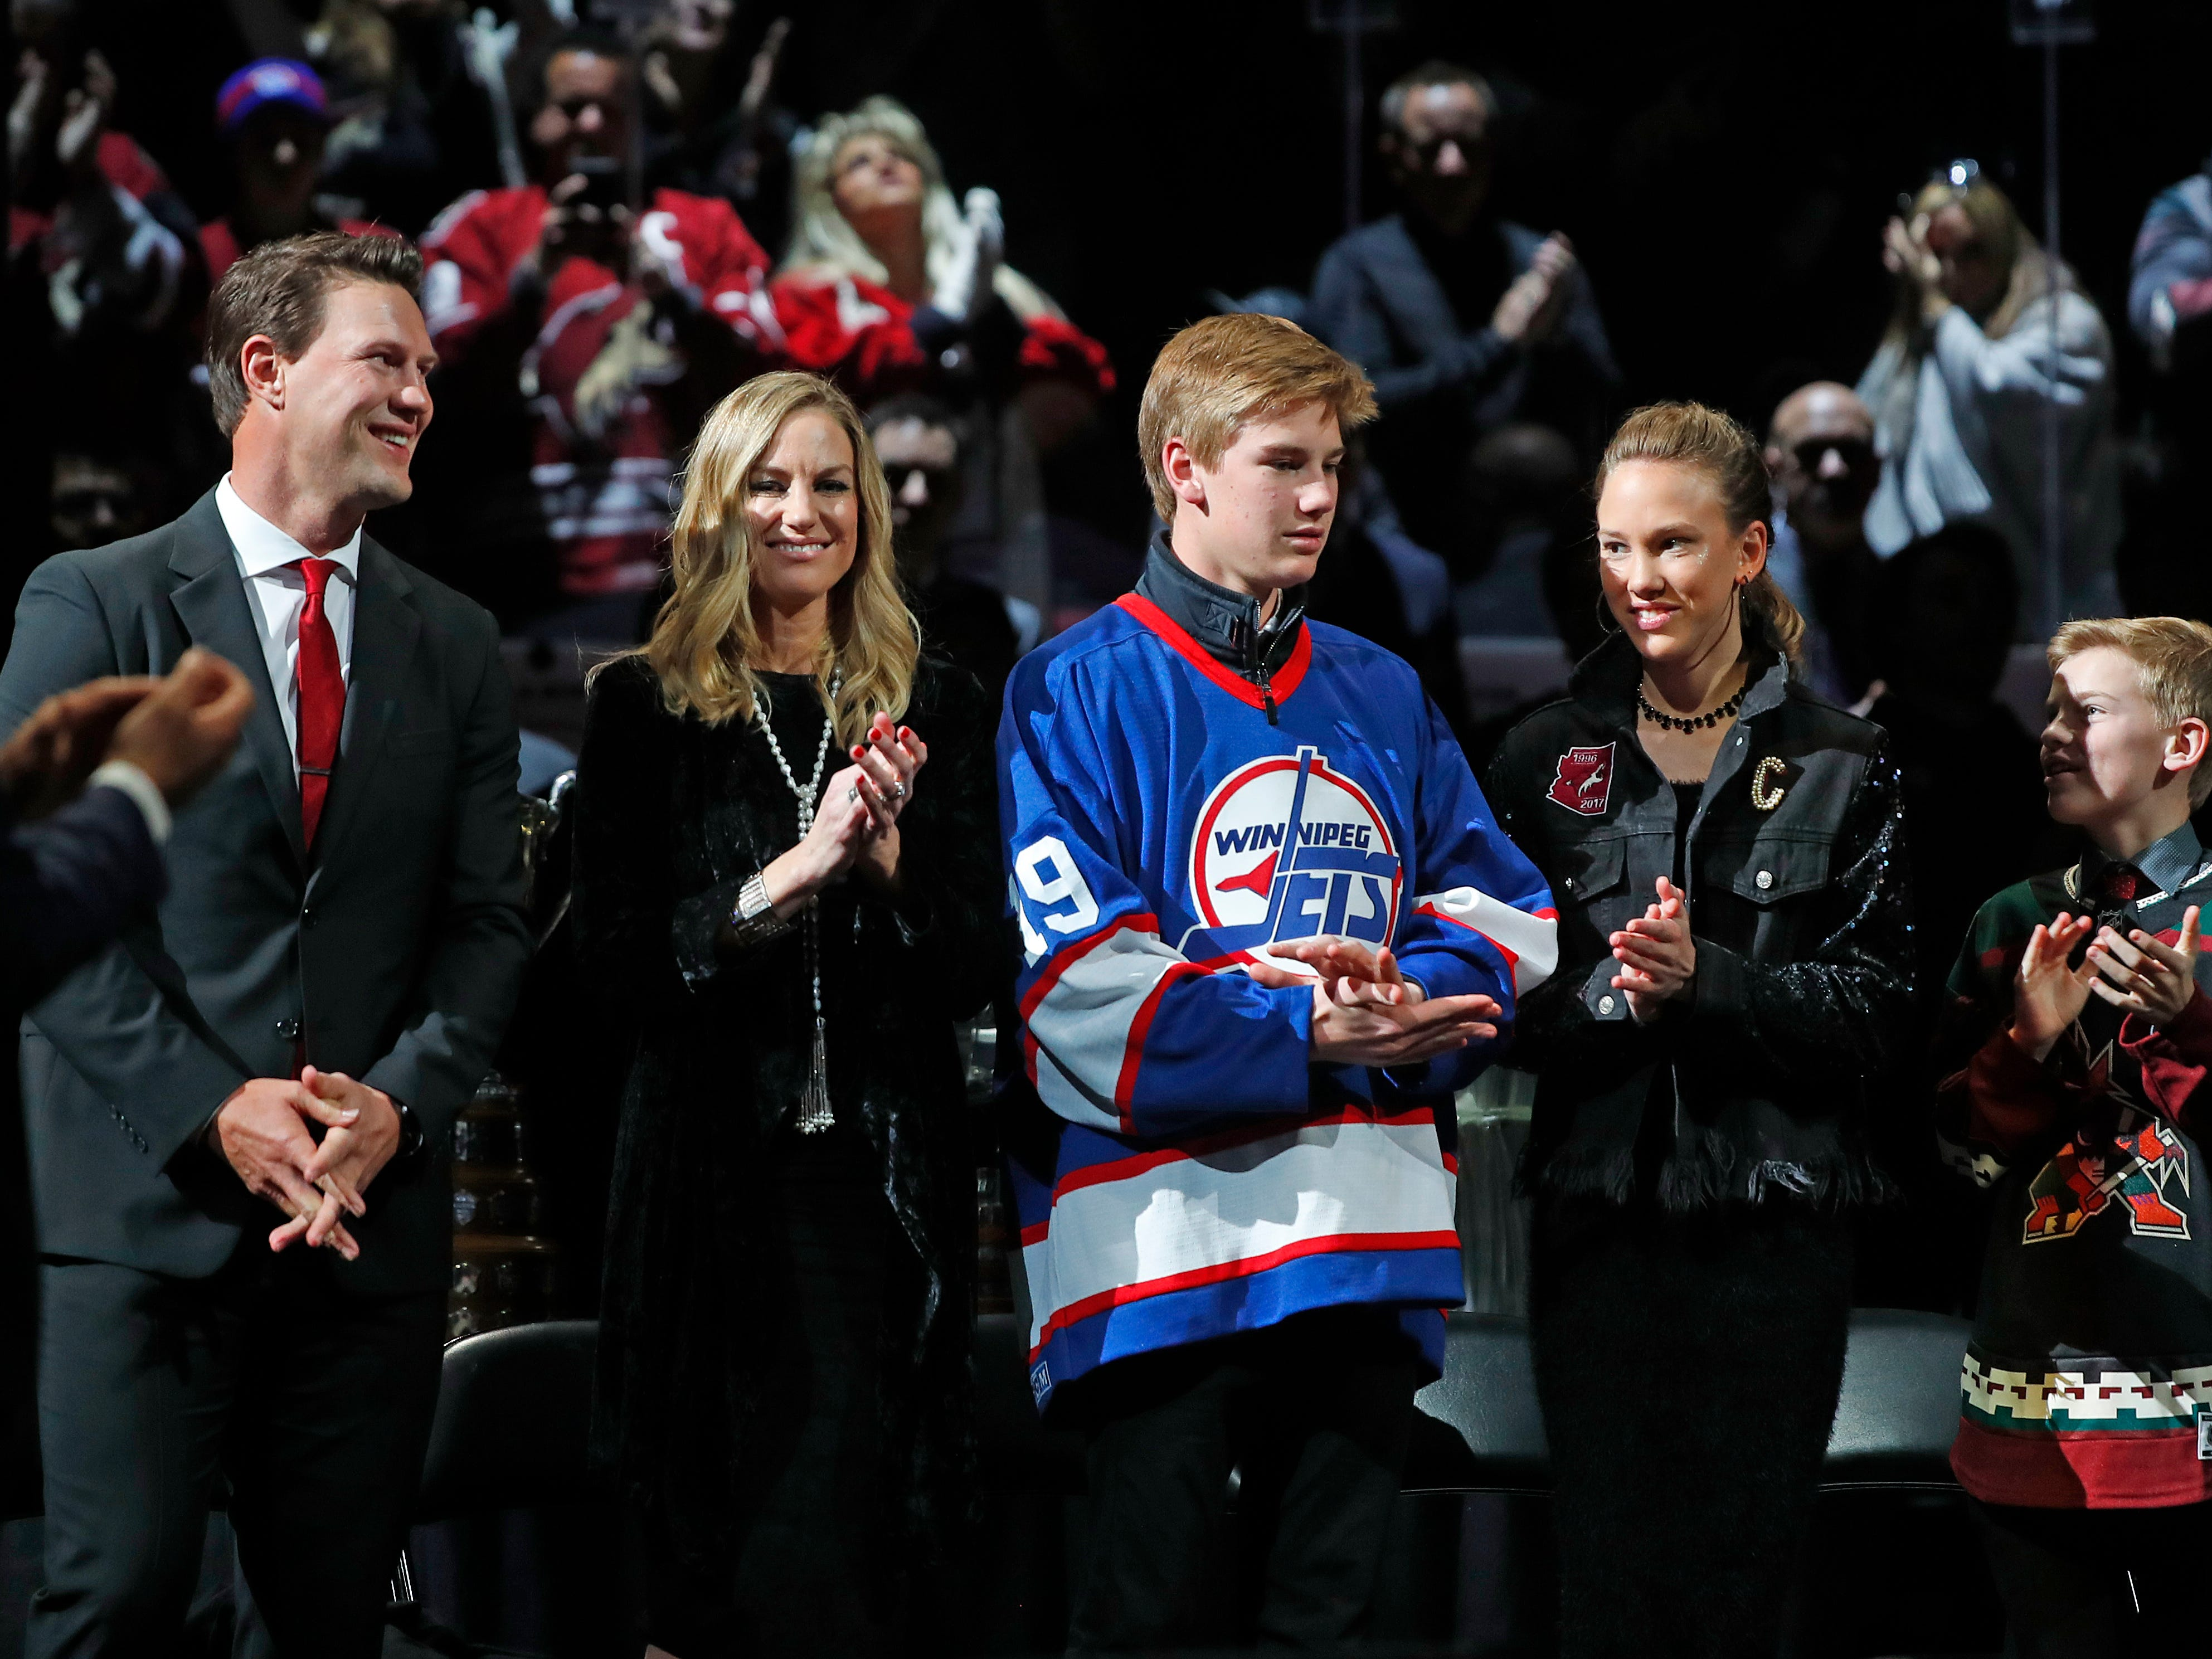 Shane Doan smiles as he receives a standing ovation next to his wife Andrea and children Josh, Karys and Carson during his jersey retirement ceremony at Gila River Arena in Glendale, Ariz. on February 24, 2019.